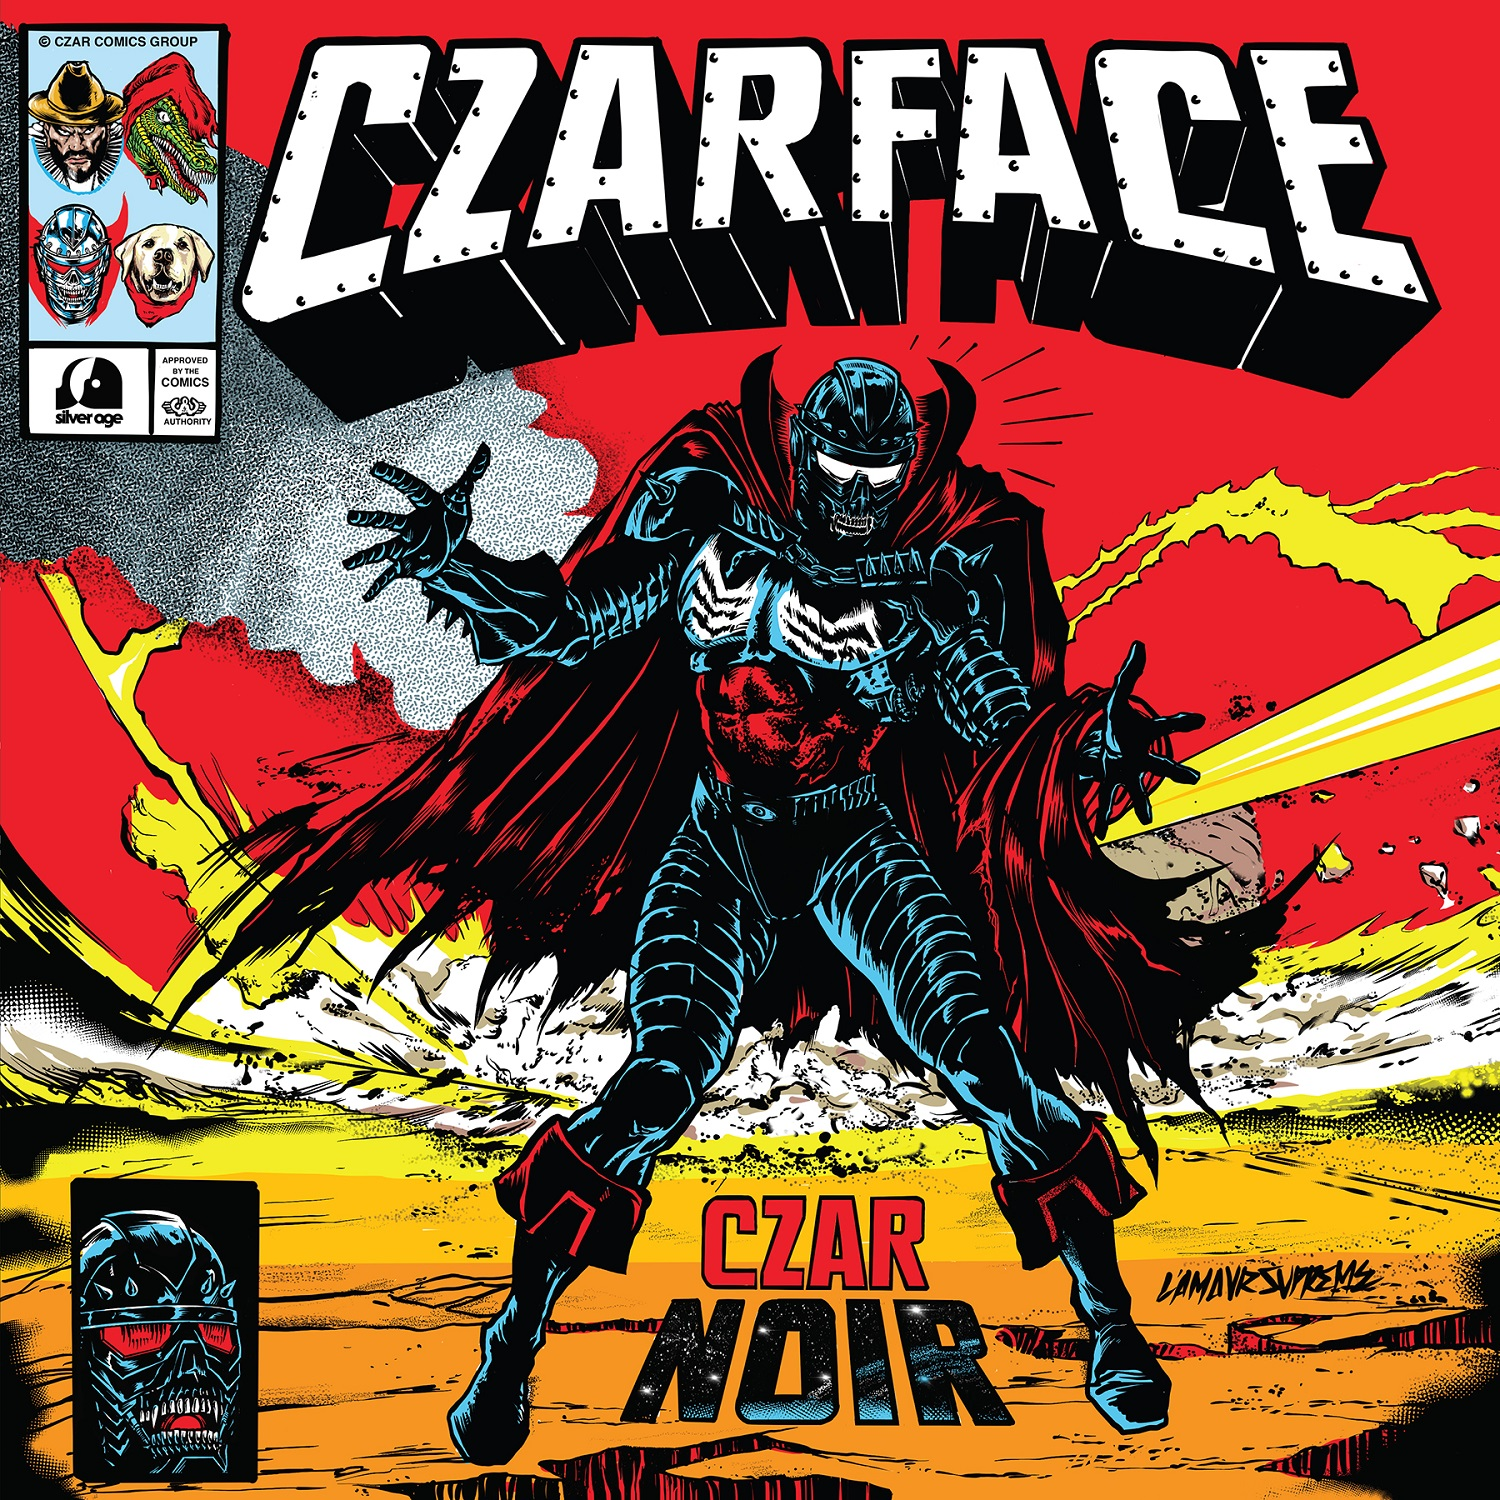 Czarface - Czar Noir [Record Store Day] [RSD Drops 2021]